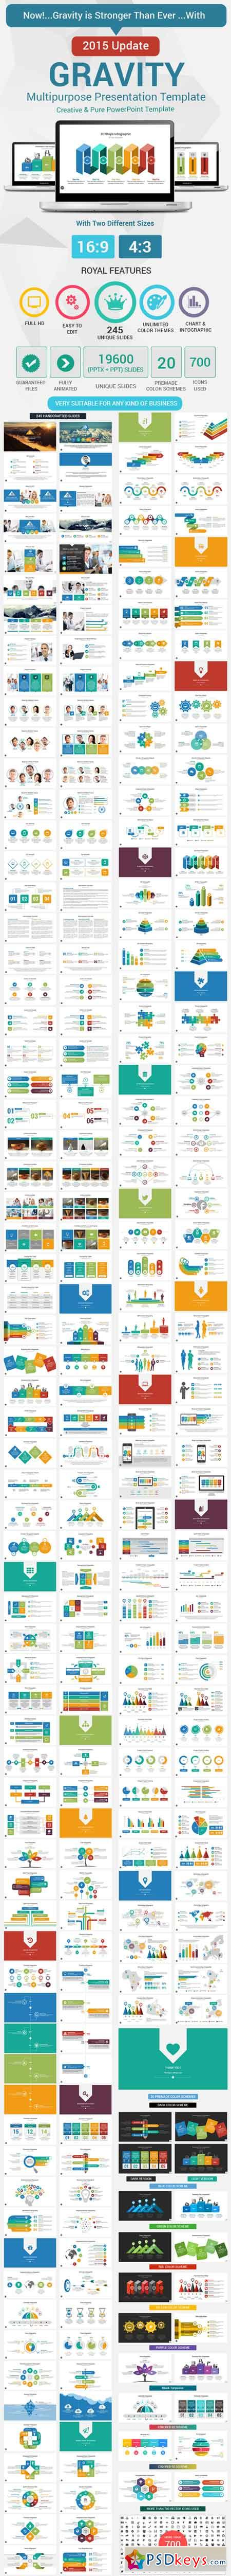 Gravity PowerPoint Presentation Template 9102316